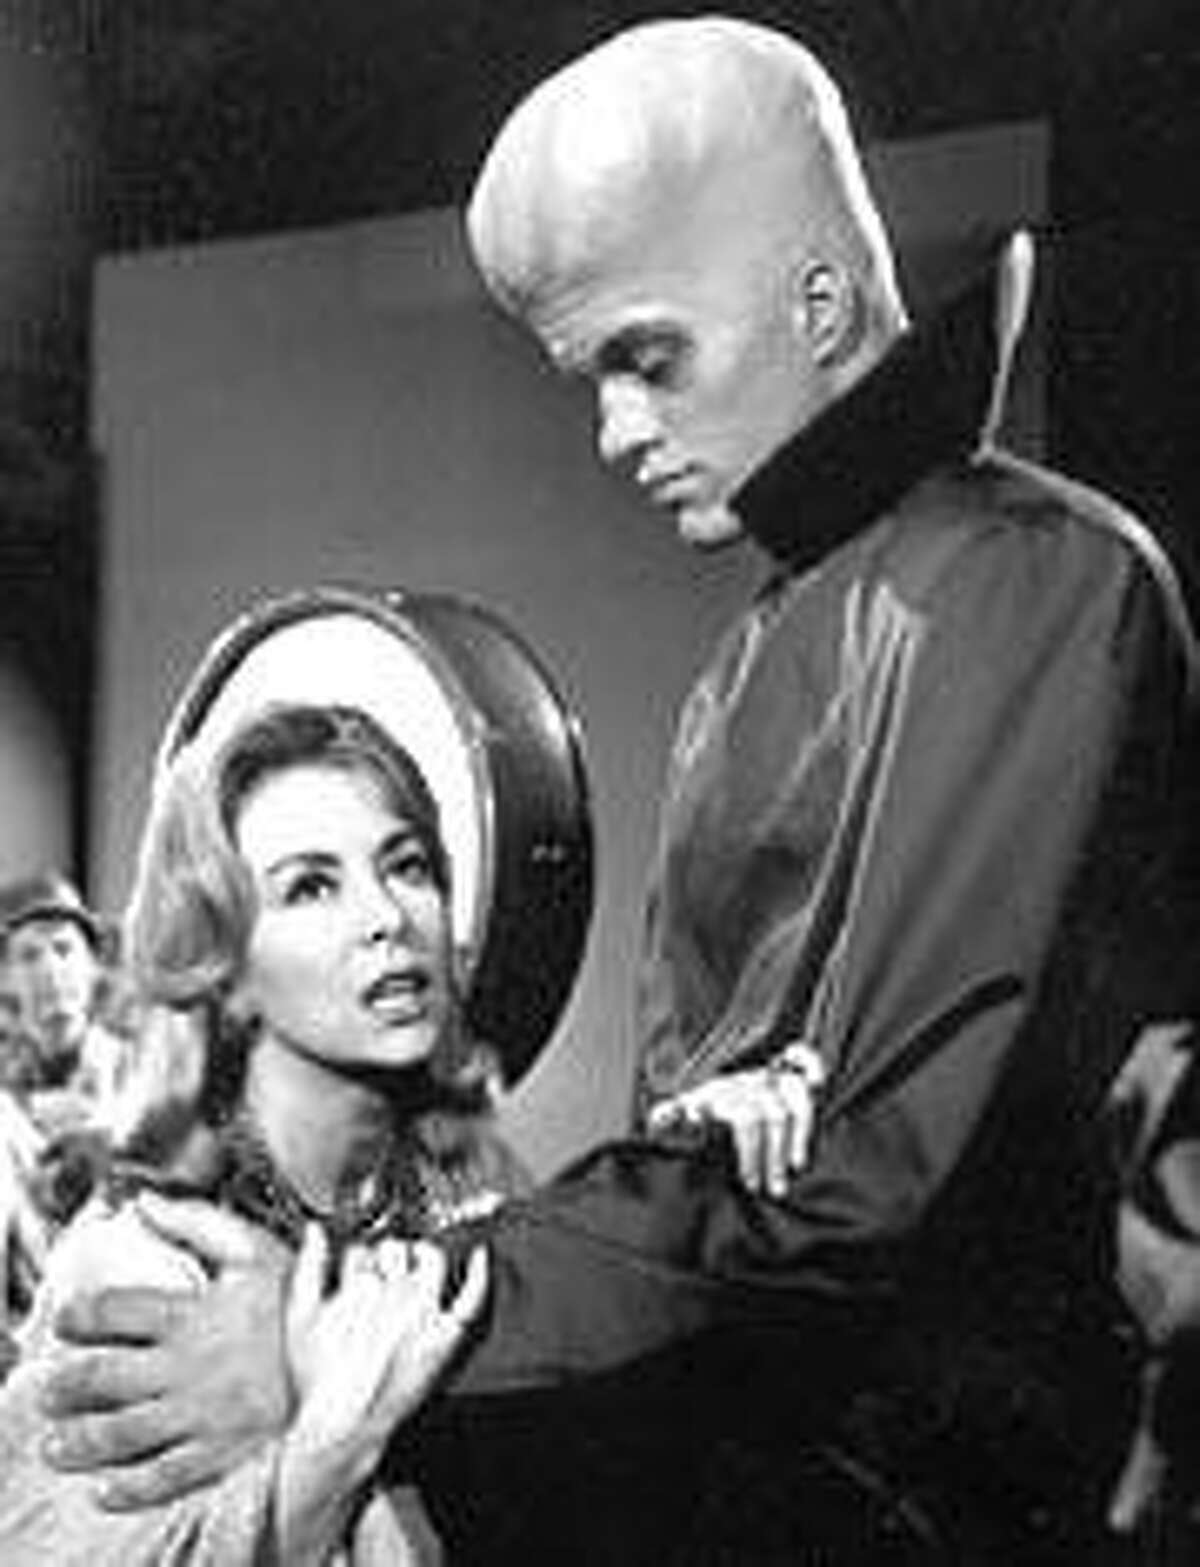 """The episode """"To Serve Man"""" on Syfy's """"Twilight Zone"""" marathon (see below). We'd tell you what the woman is saying, but it's the shocker ending of the story."""